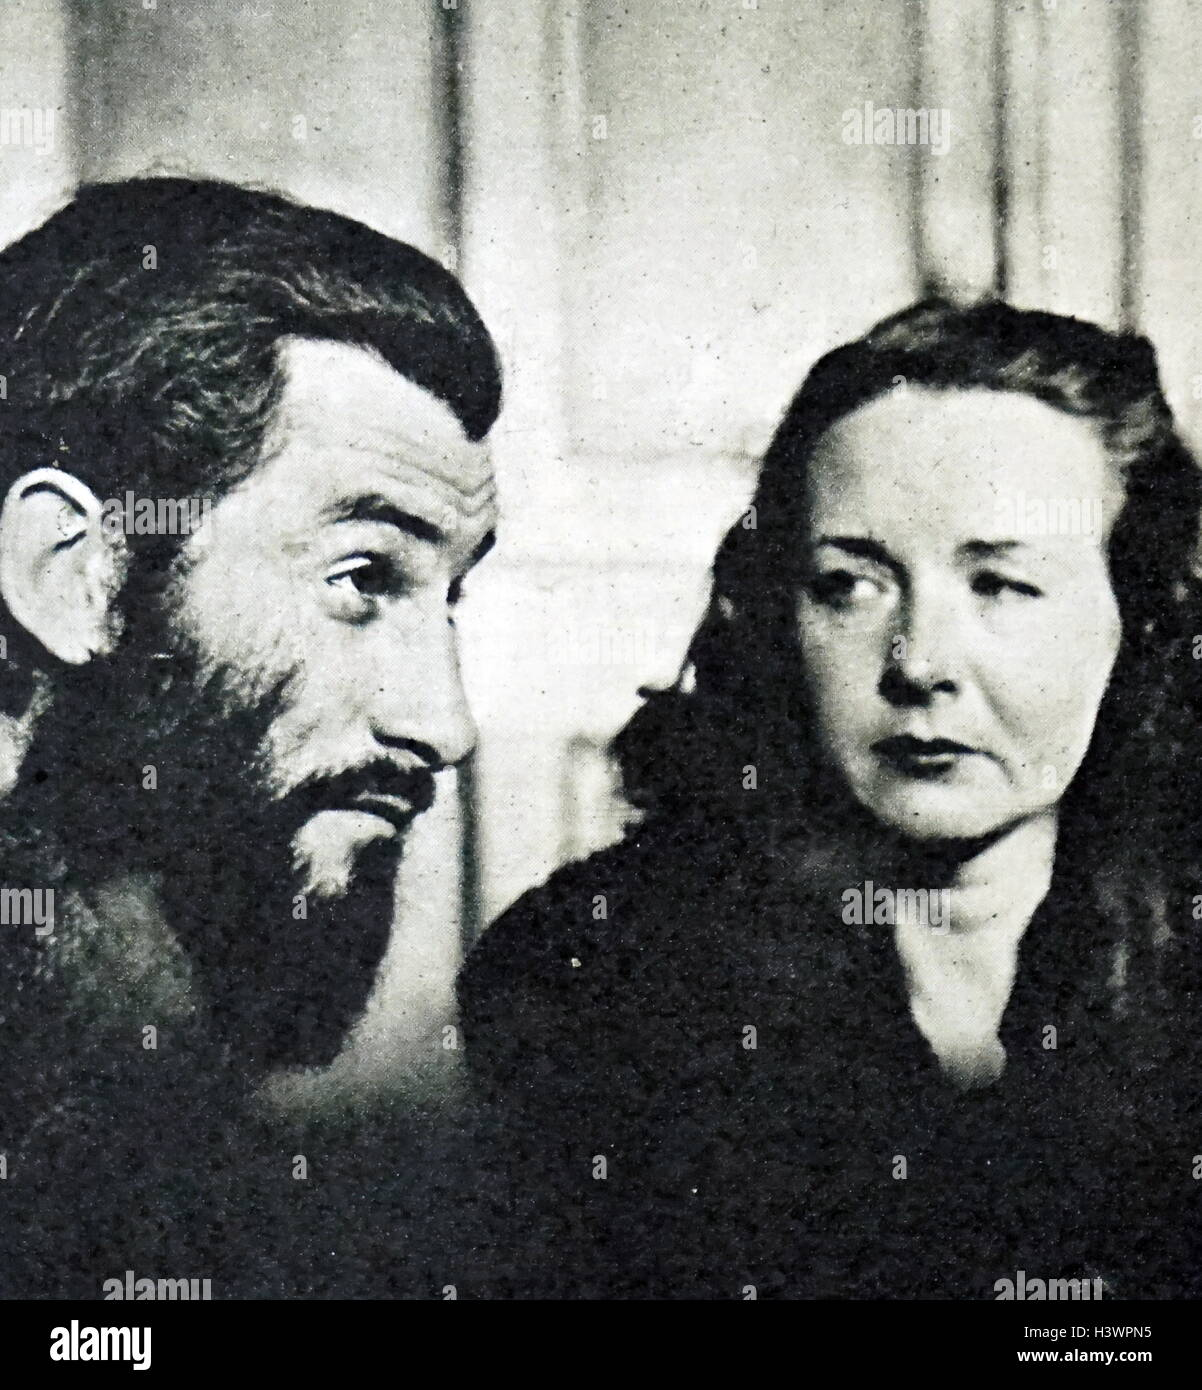 Photograph of Geneviève Danelle and Roger Calame - Stock Image